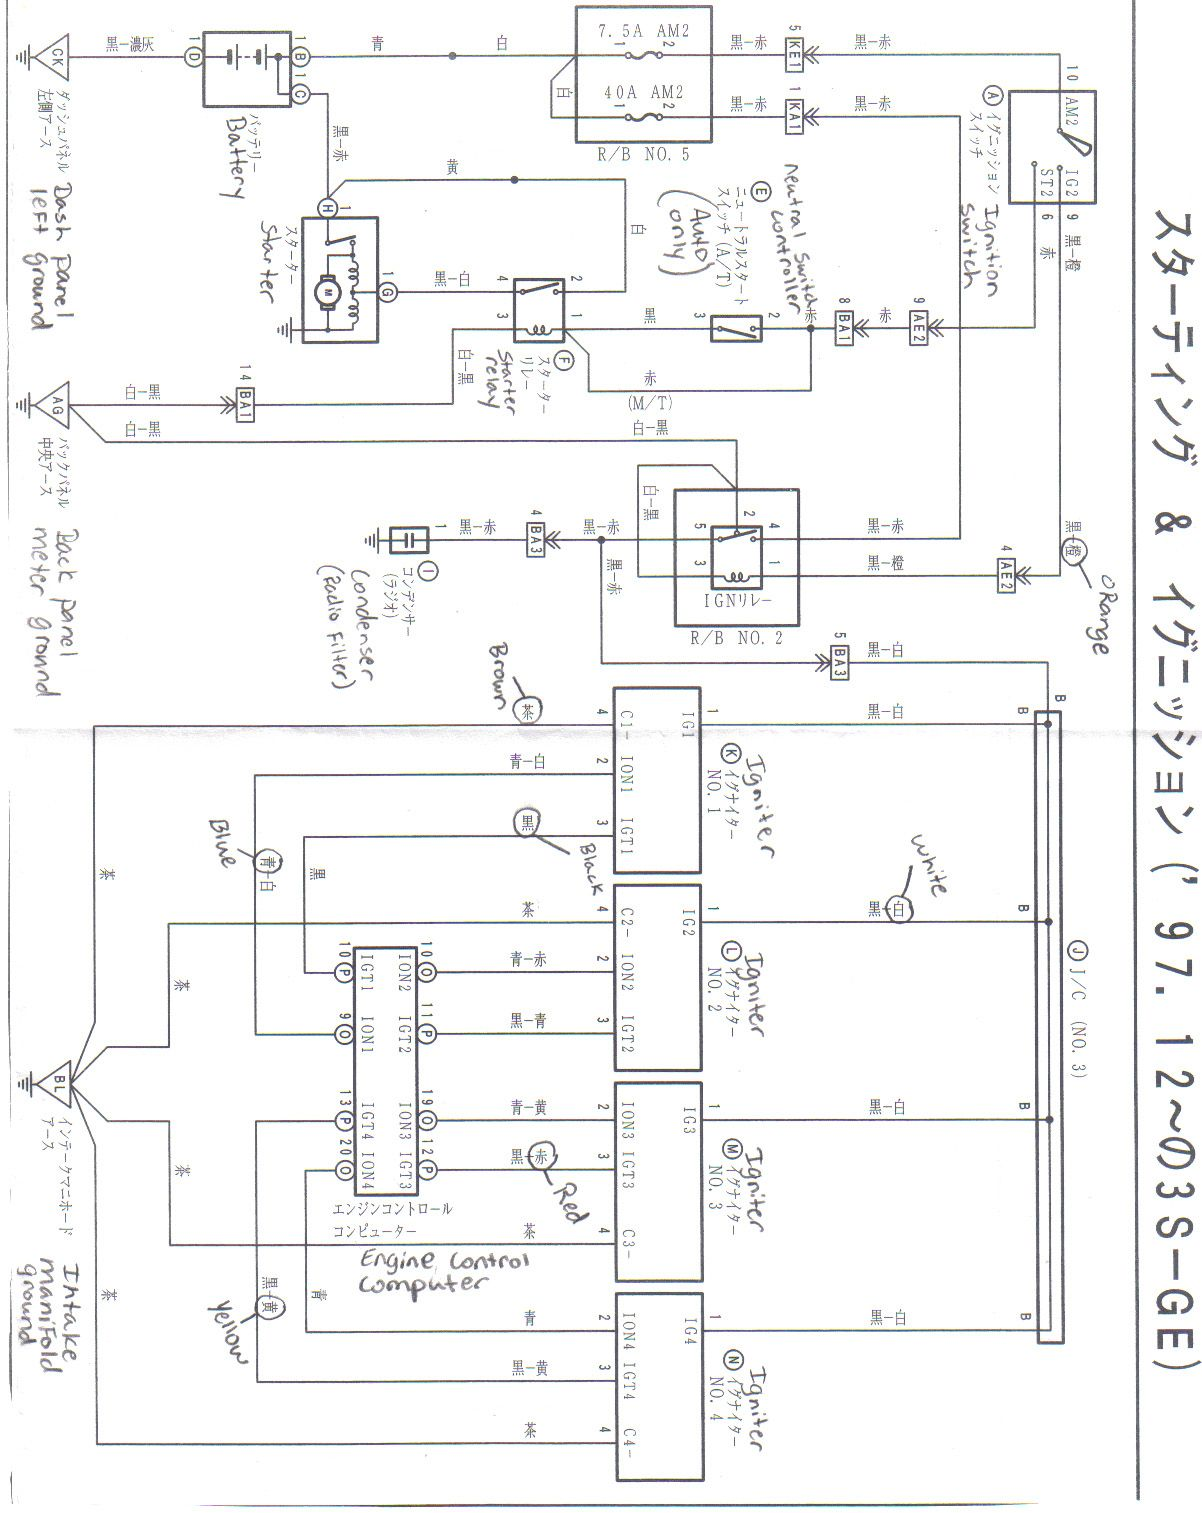 Wrg 5324 3sgte Beam Ecu Wiring Diagram | Ecu, Beams, Cool pictures | Beams Wiring Diagram |  | Pinterest